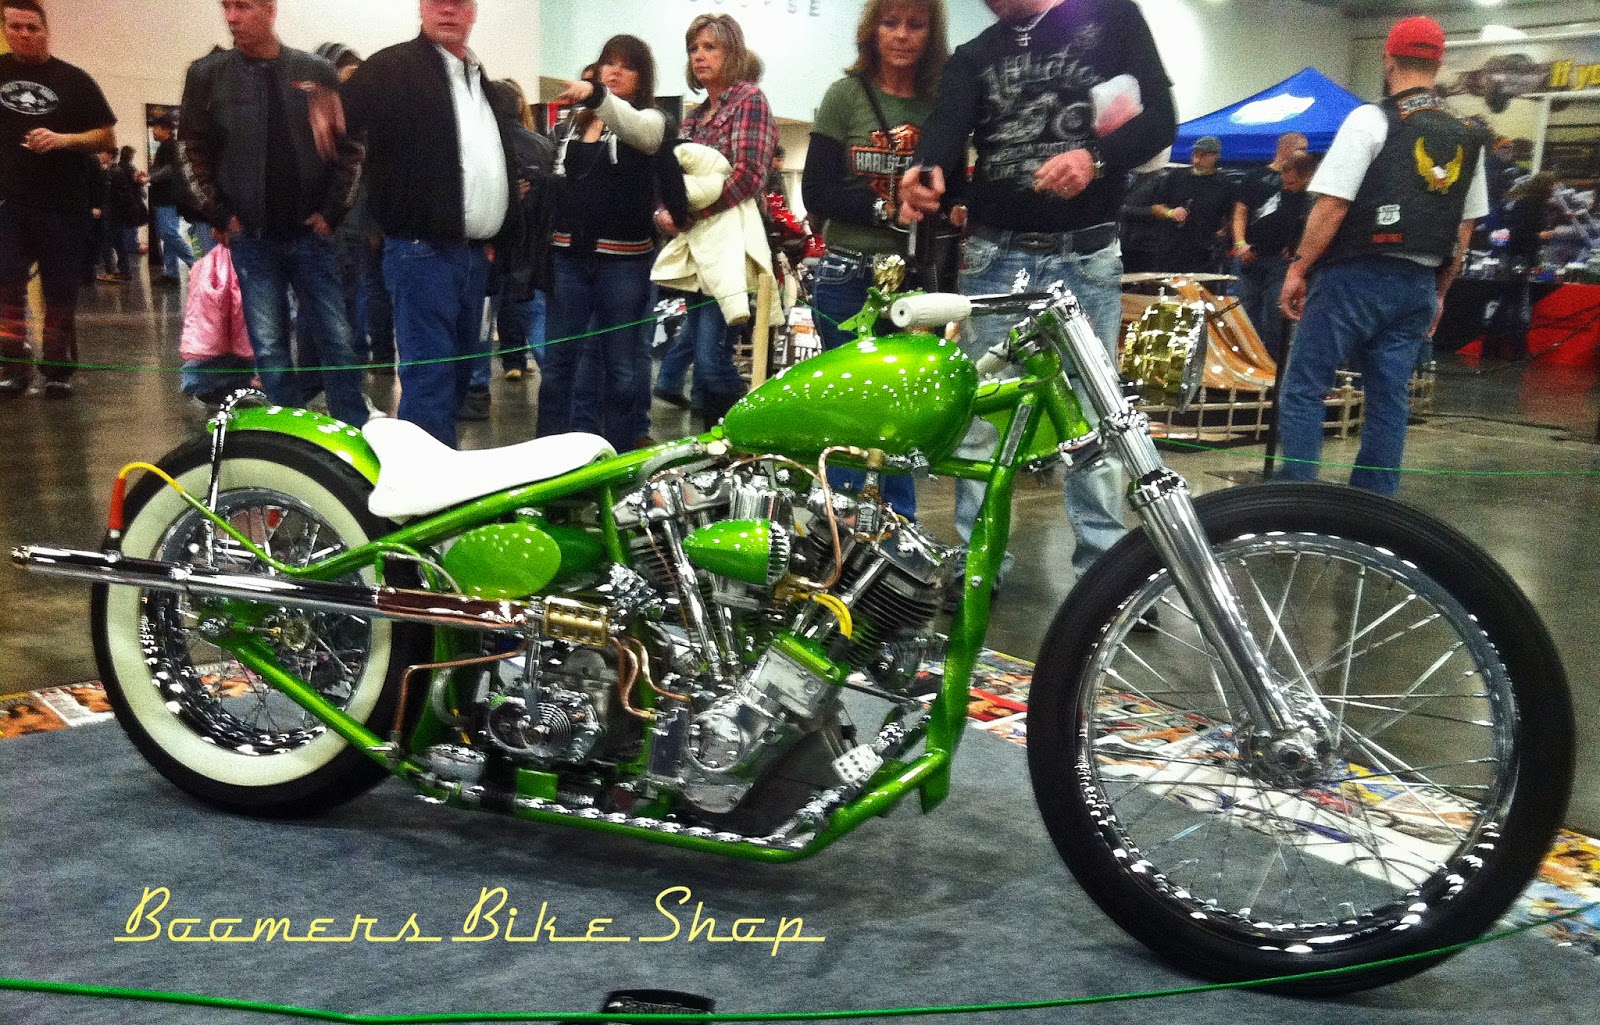 boomers bike shop easy rider bike show 2014. Black Bedroom Furniture Sets. Home Design Ideas